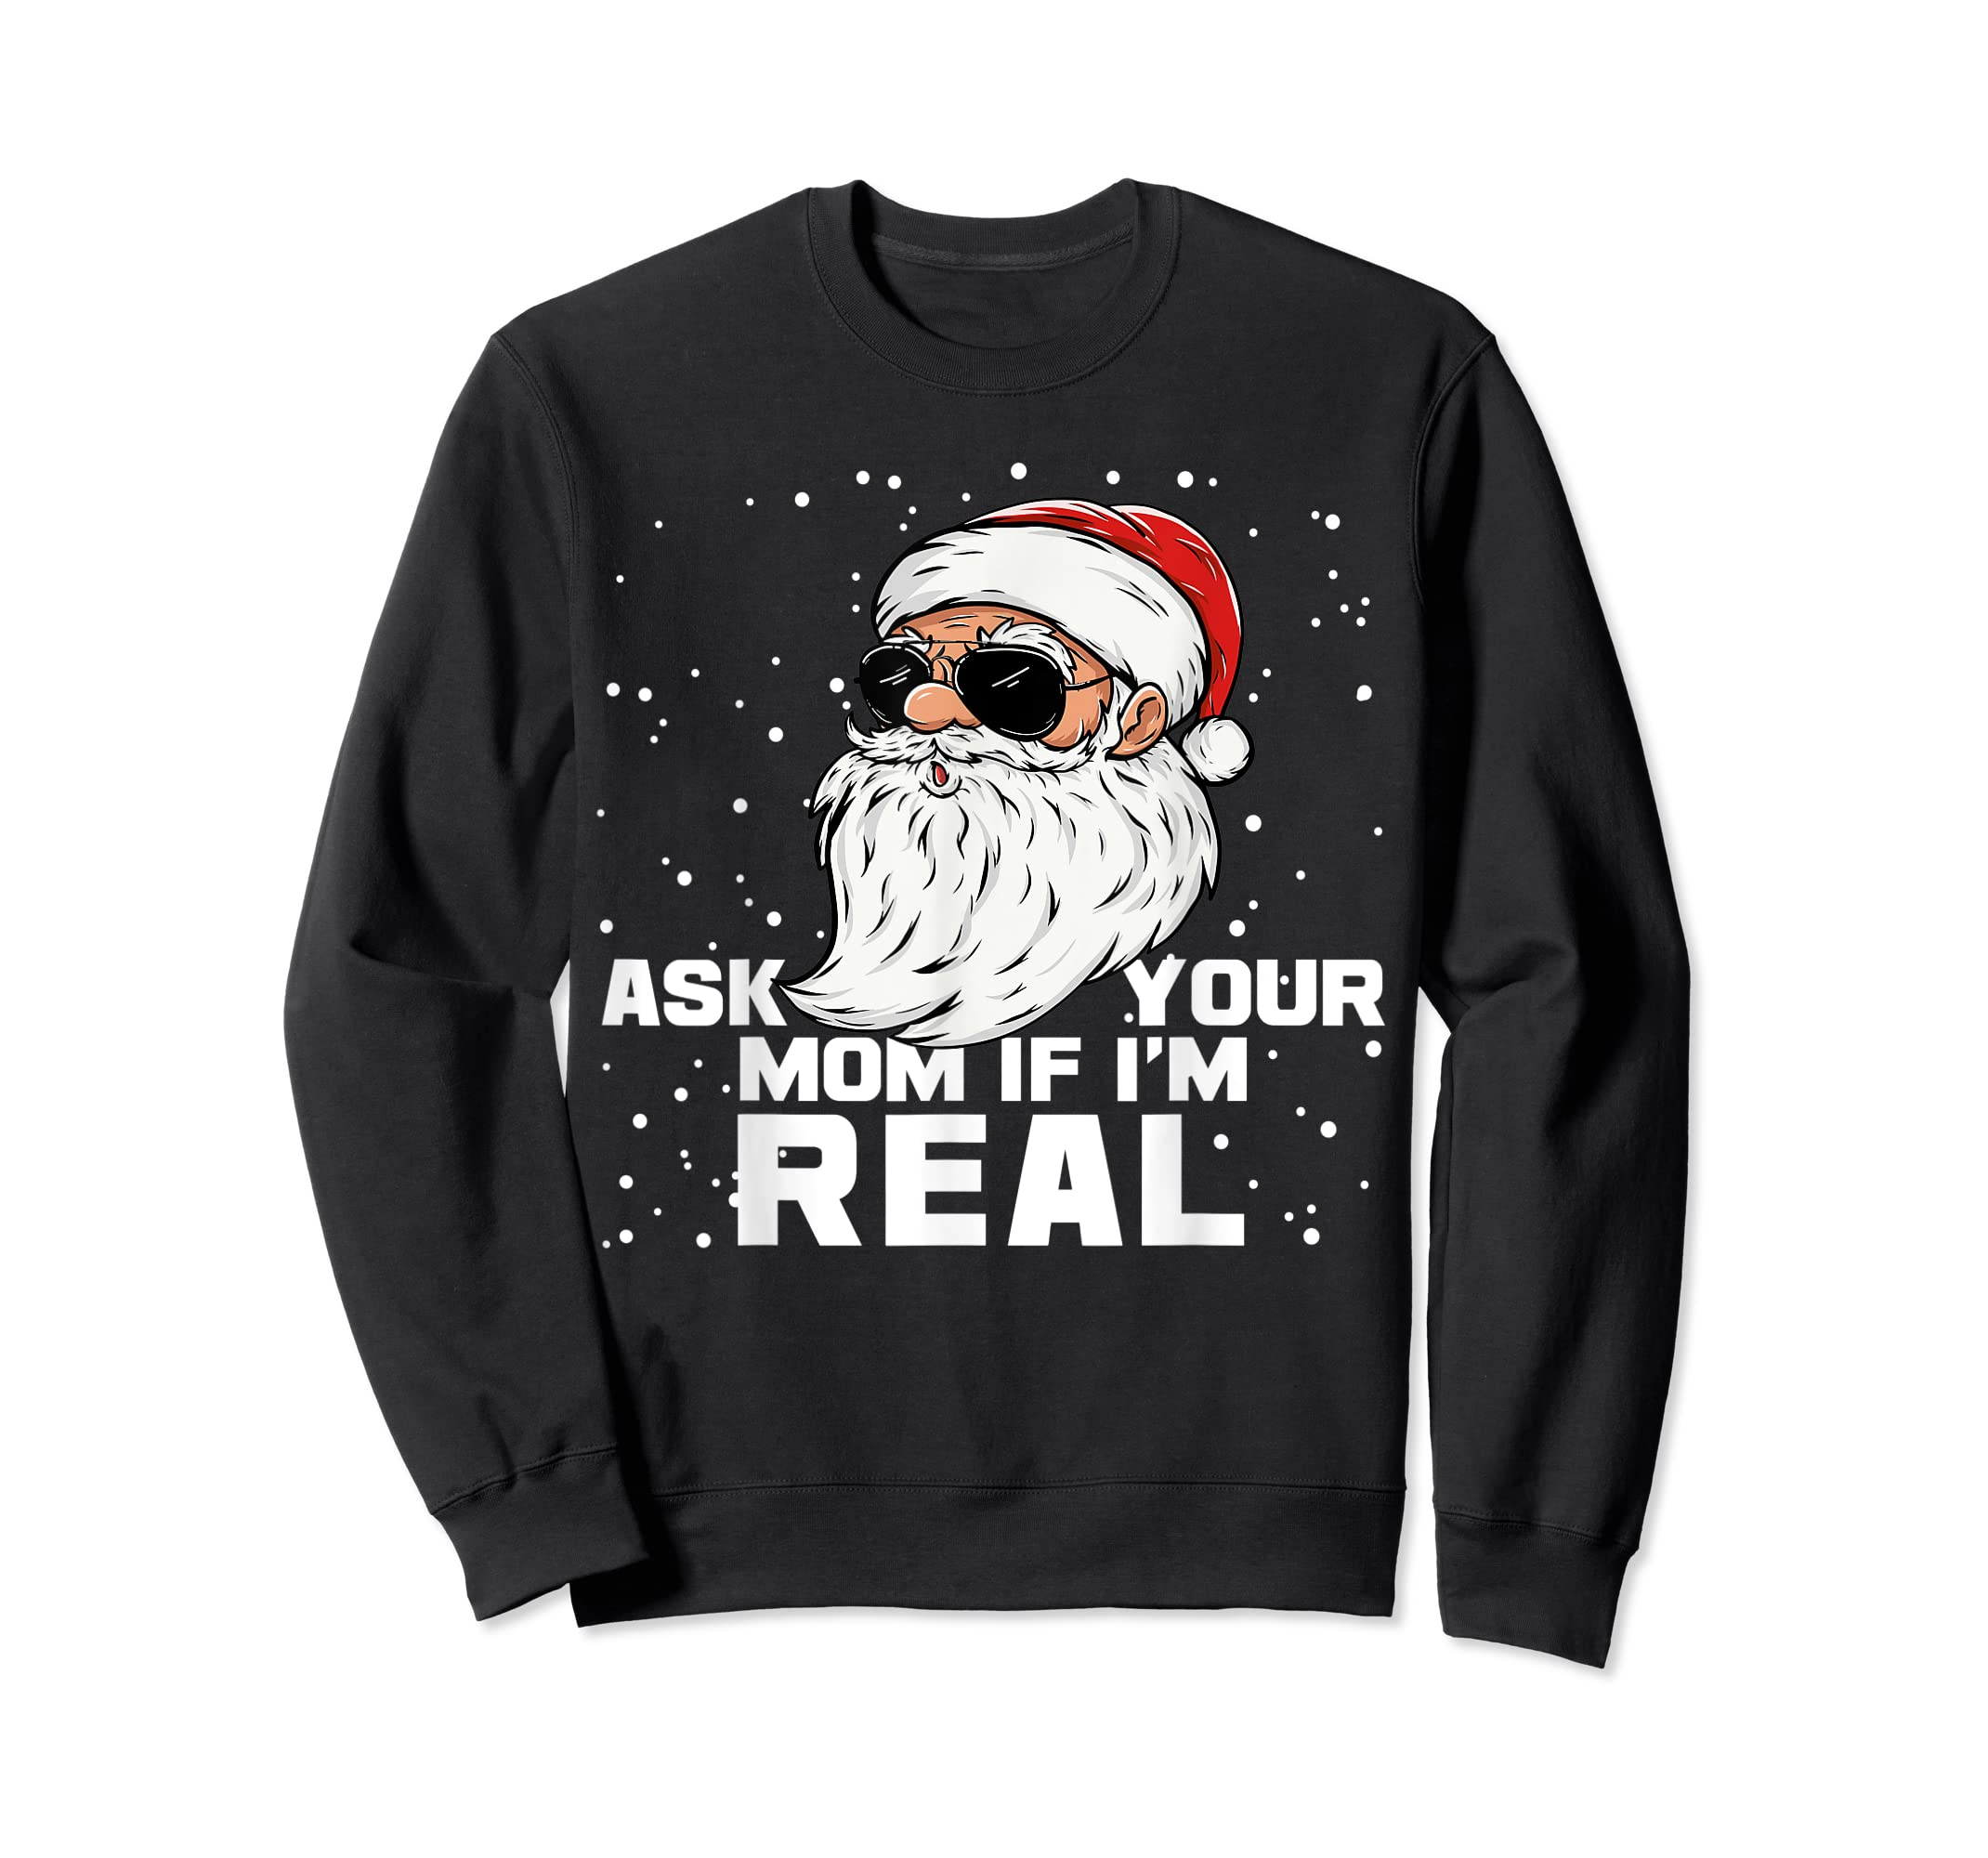 Ask Your Mom If I'm Real | Santa Claus Christmas T-Shirt-Sweatshirt-Black